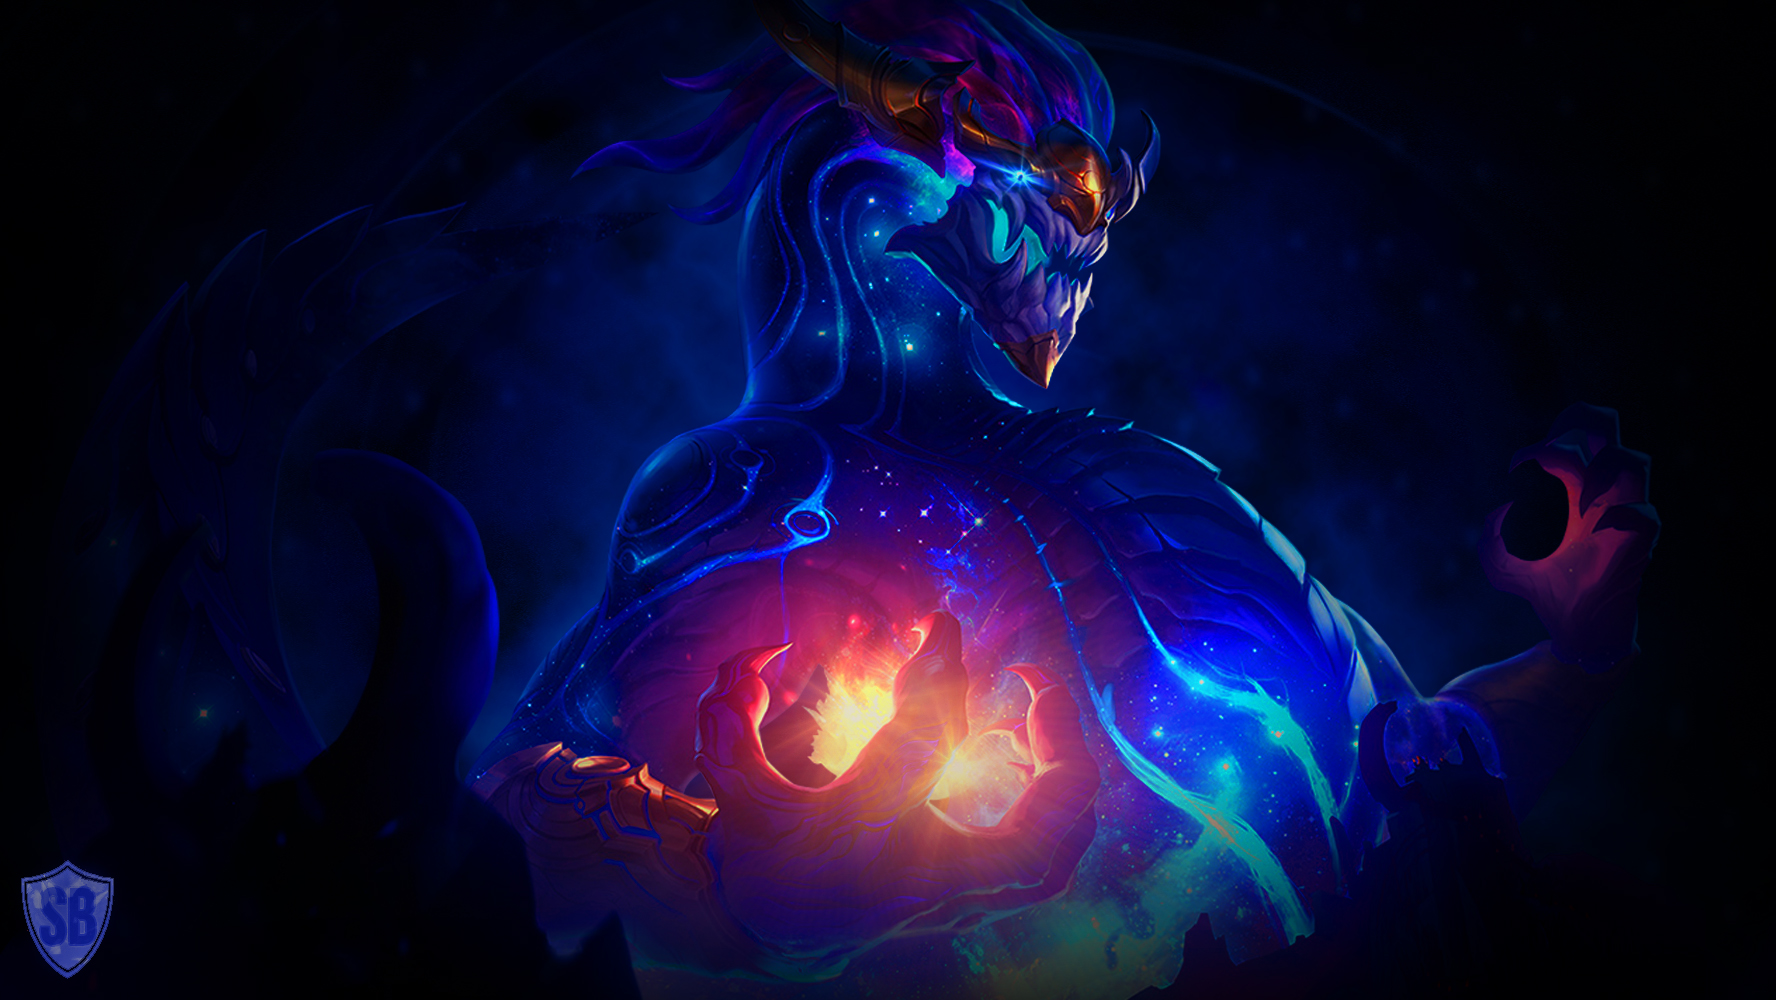 Aurelion Sol wallpaper